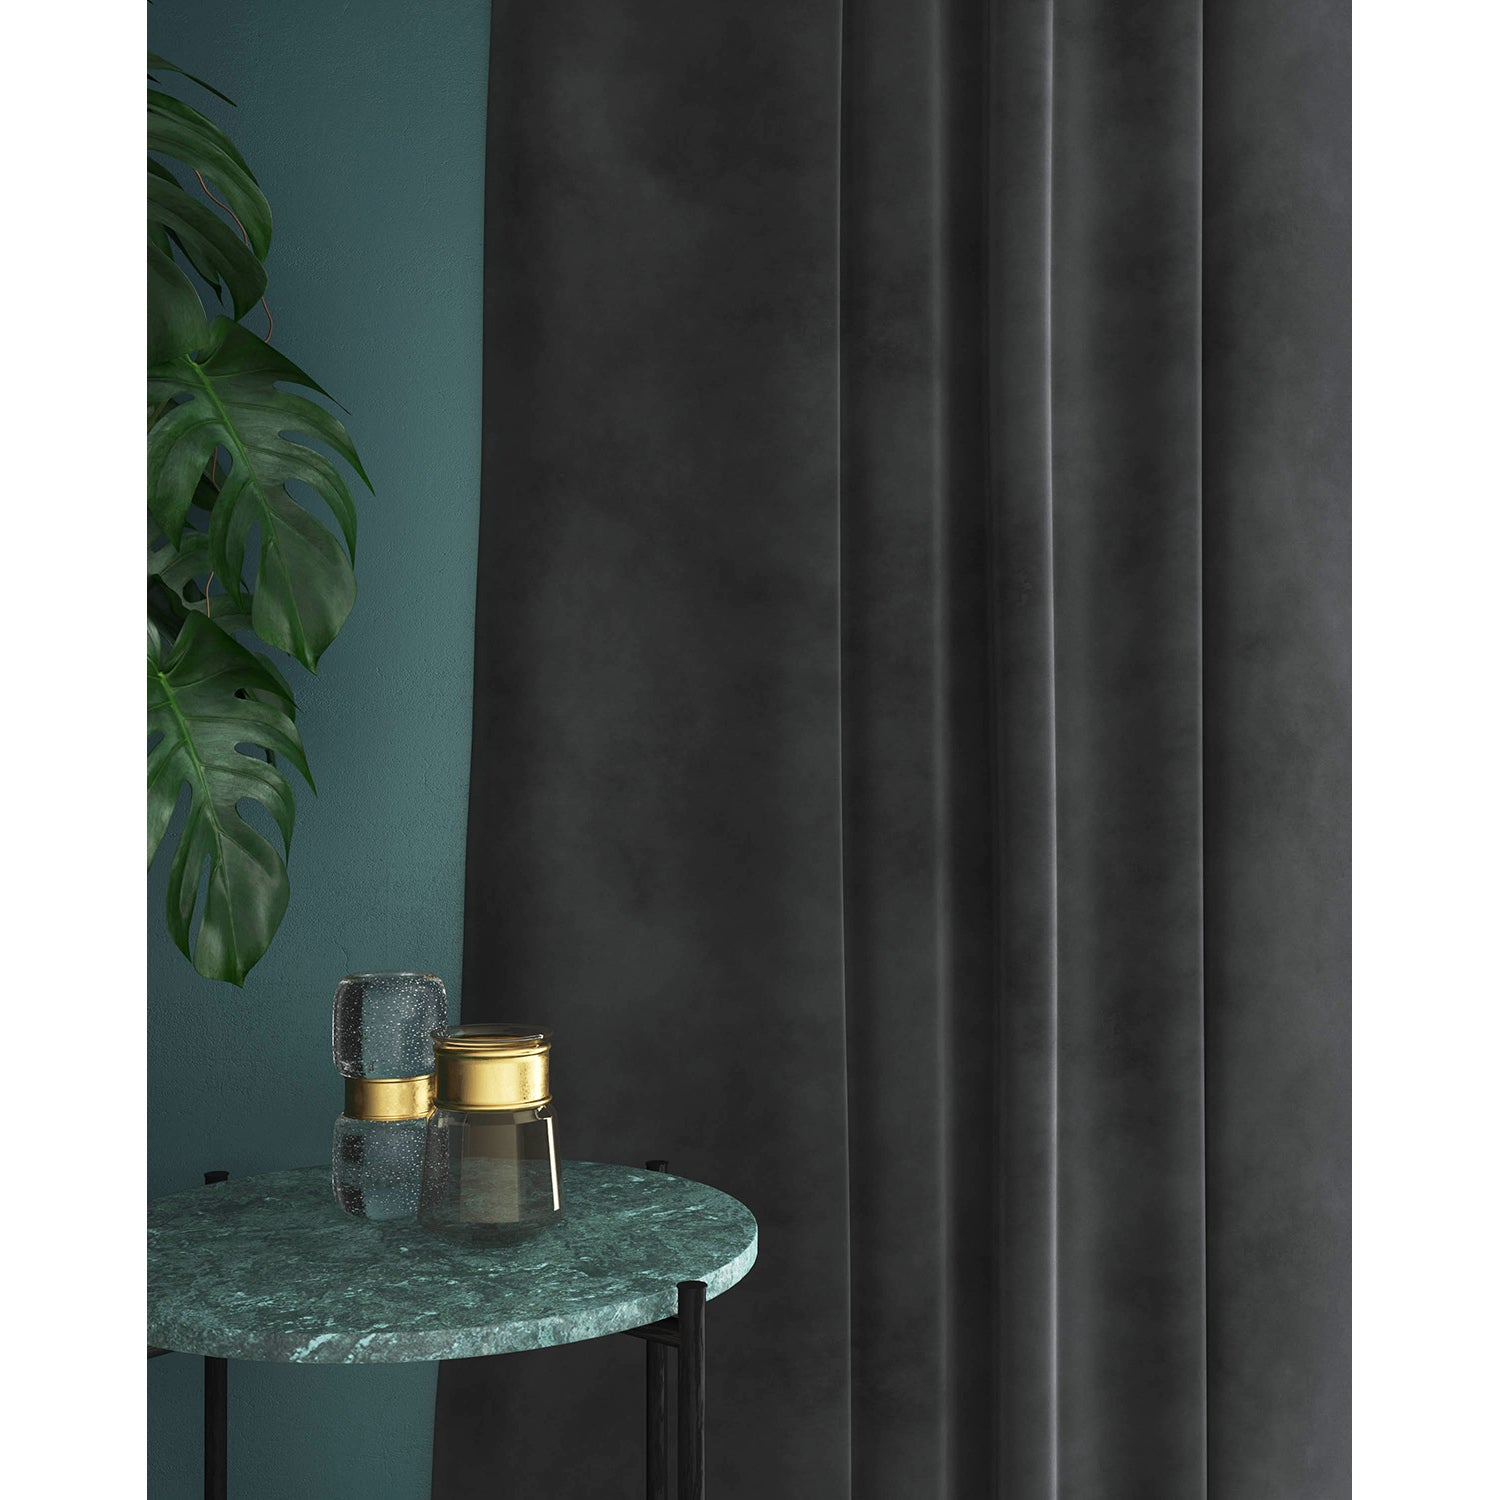 Curtain in a plain grey velvet fabric for domestic and contract curtains